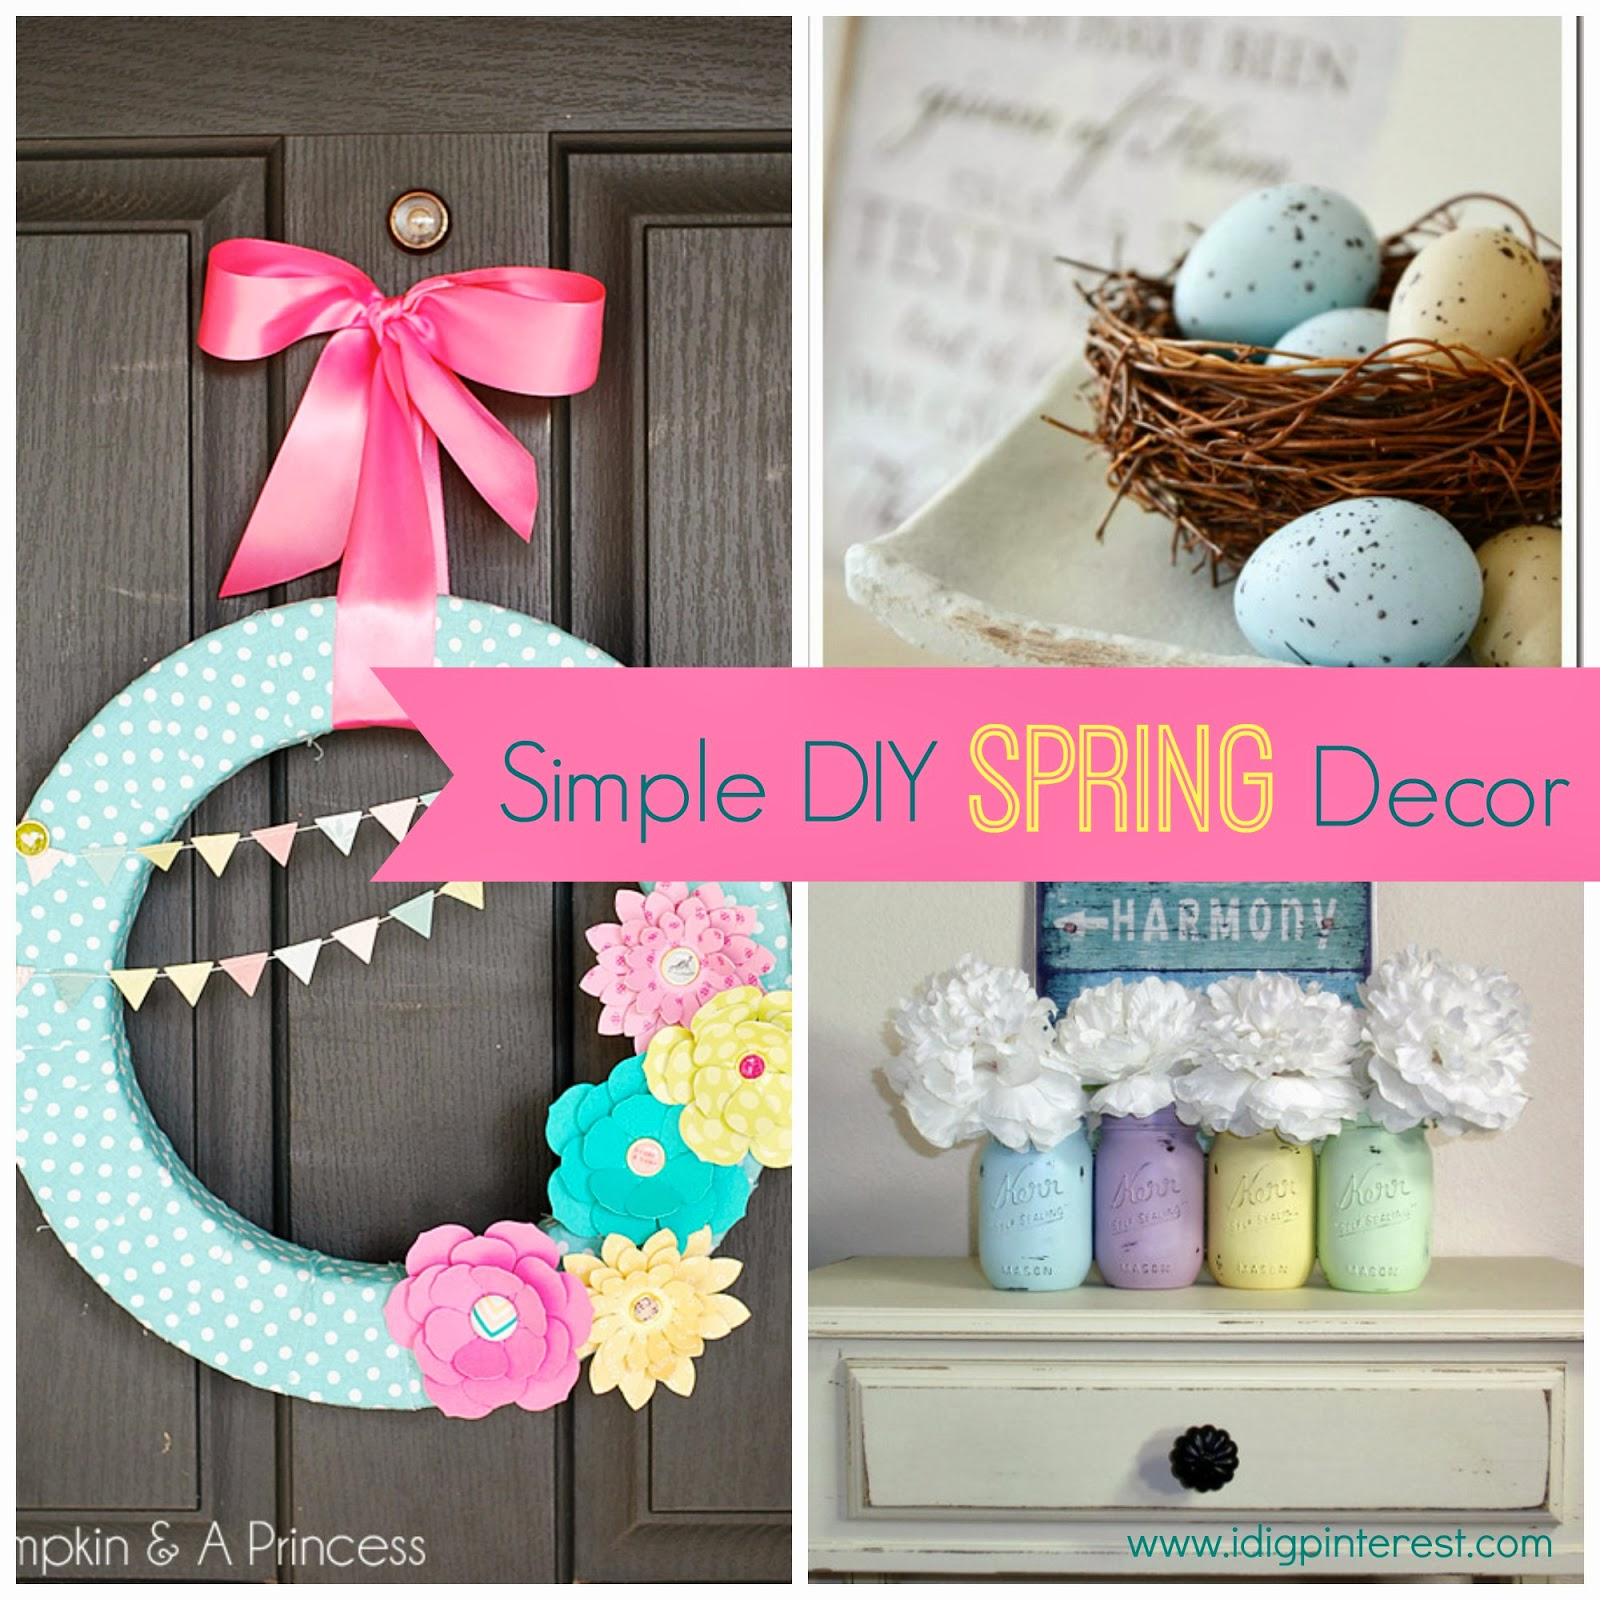 Home Design Ideas Diy: Simple DIY Spring Decor Ideas